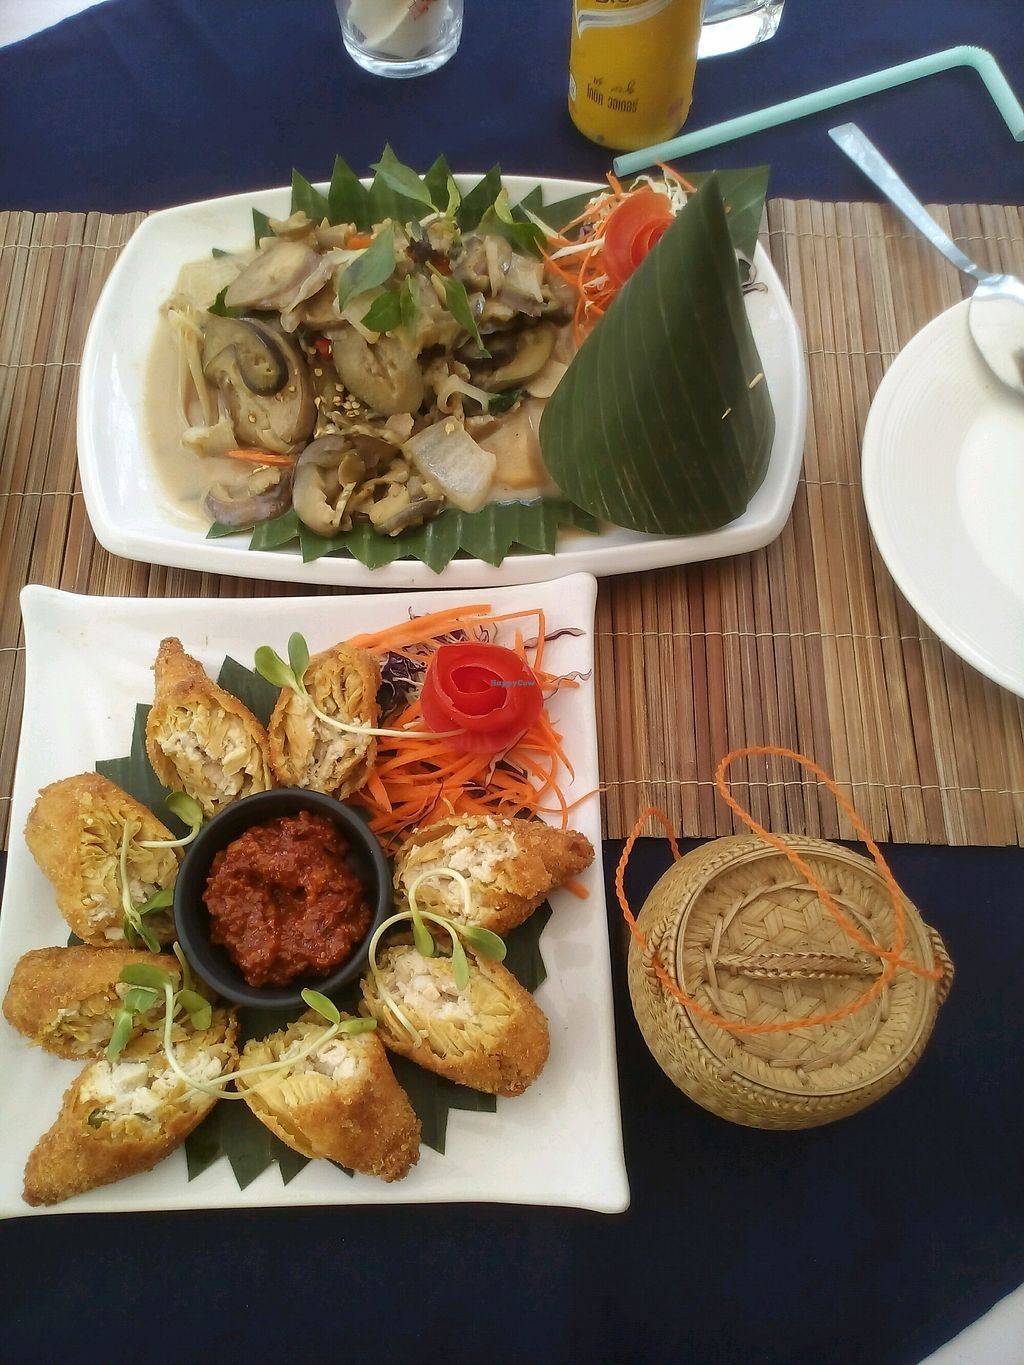 """Photo of Bamboo Tree Lao Cooking School and Restaurant  by <a href=""""/members/profile/carolink"""">carolink</a> <br/>stuffed bamboo sprouts & creen curry <br/> April 18, 2018  - <a href='/contact/abuse/image/91511/387631'>Report</a>"""